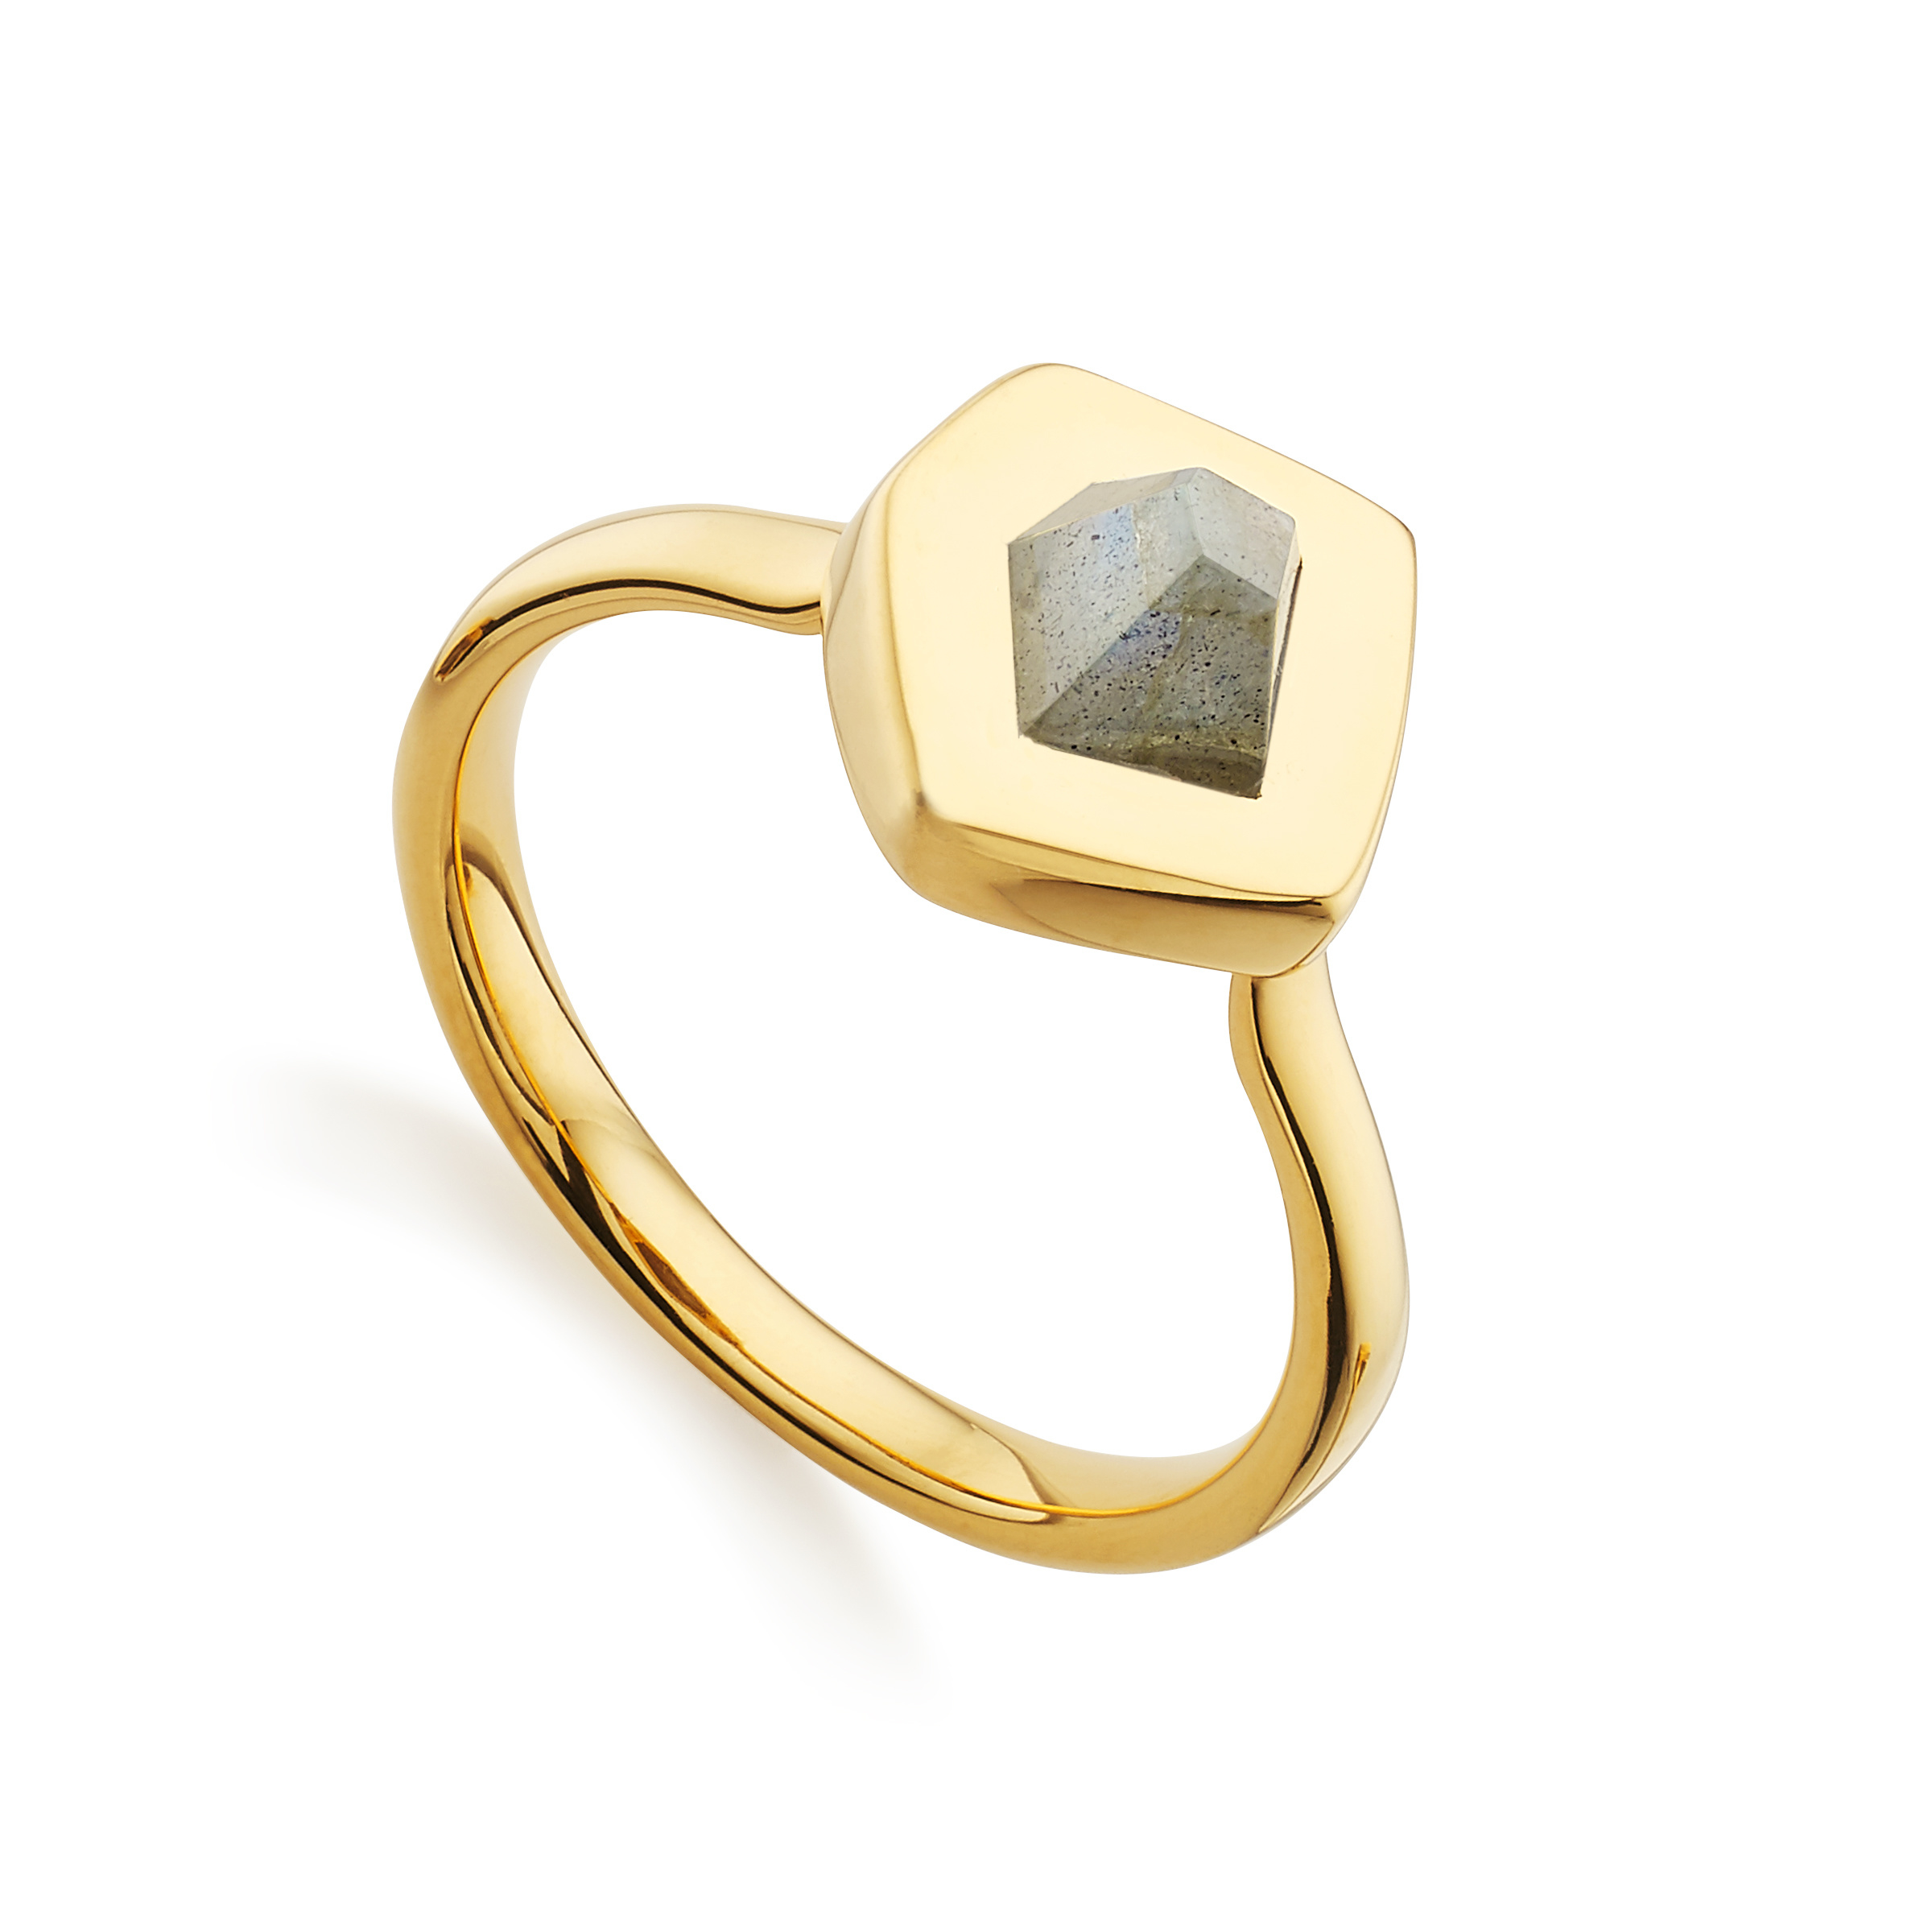 Monica vinader Petra Stacking Ring in Multicolor